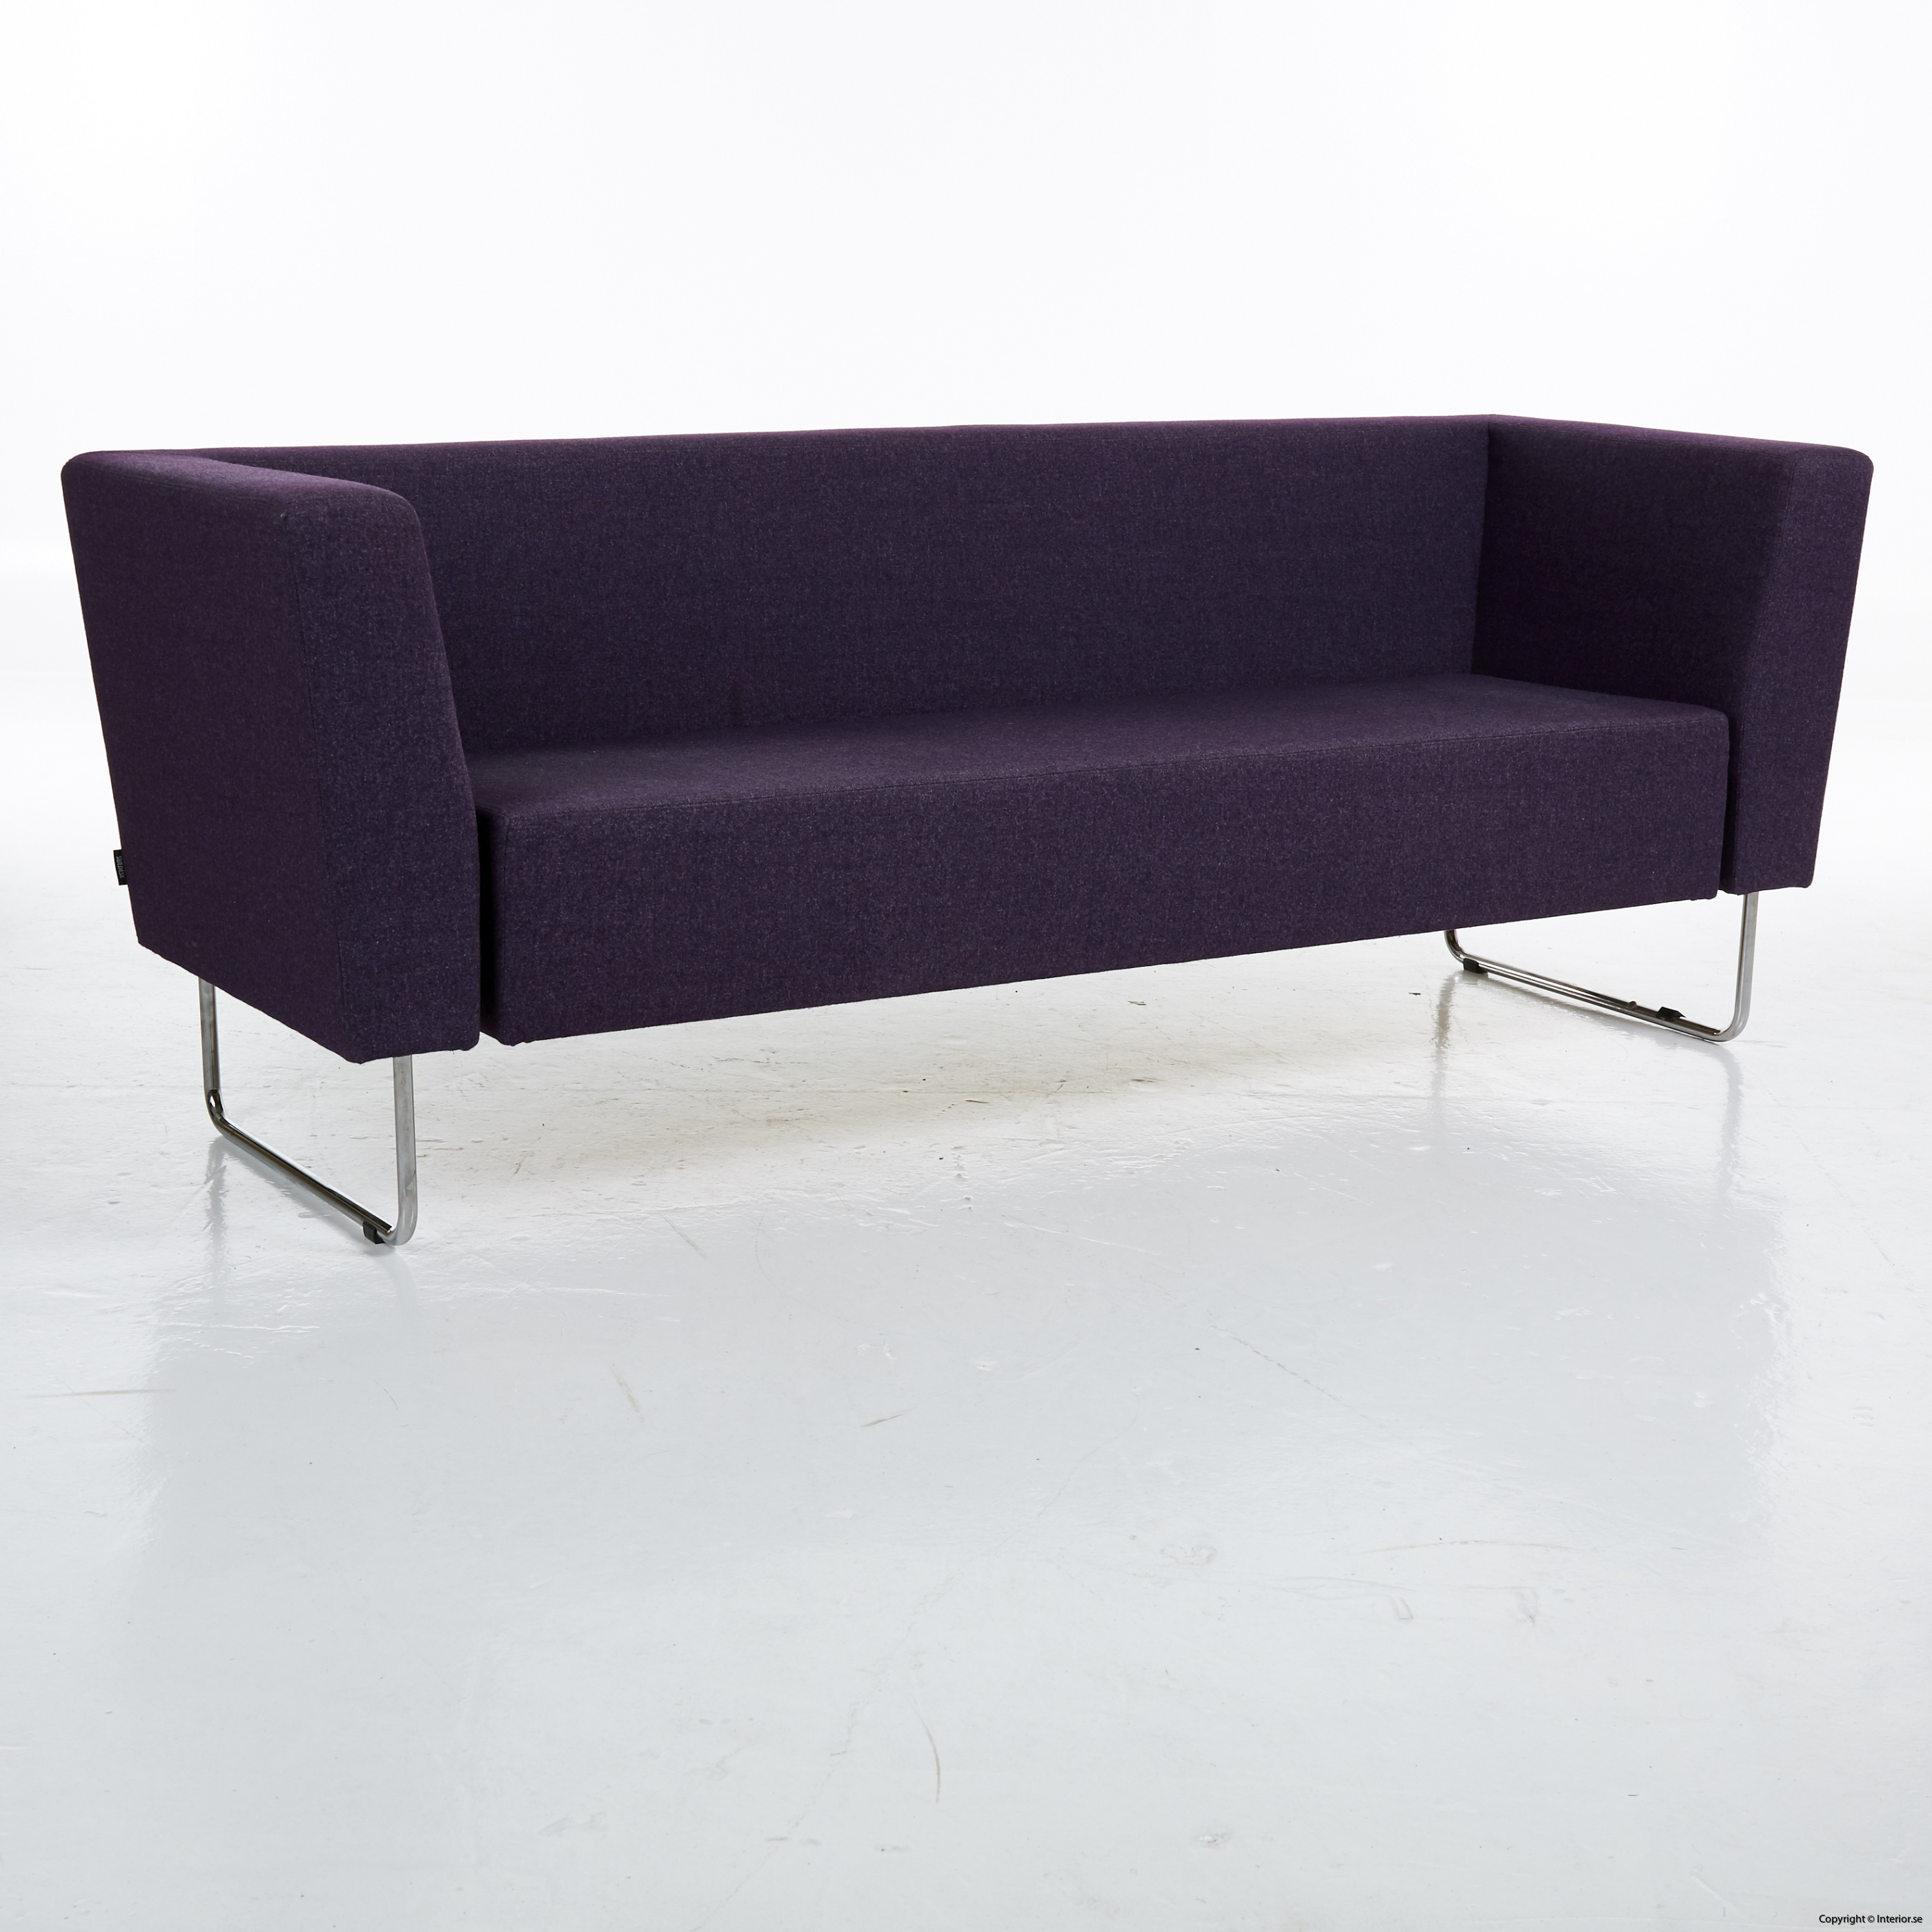 Soffa, Swedese Gap Lounge - 3-sits 3